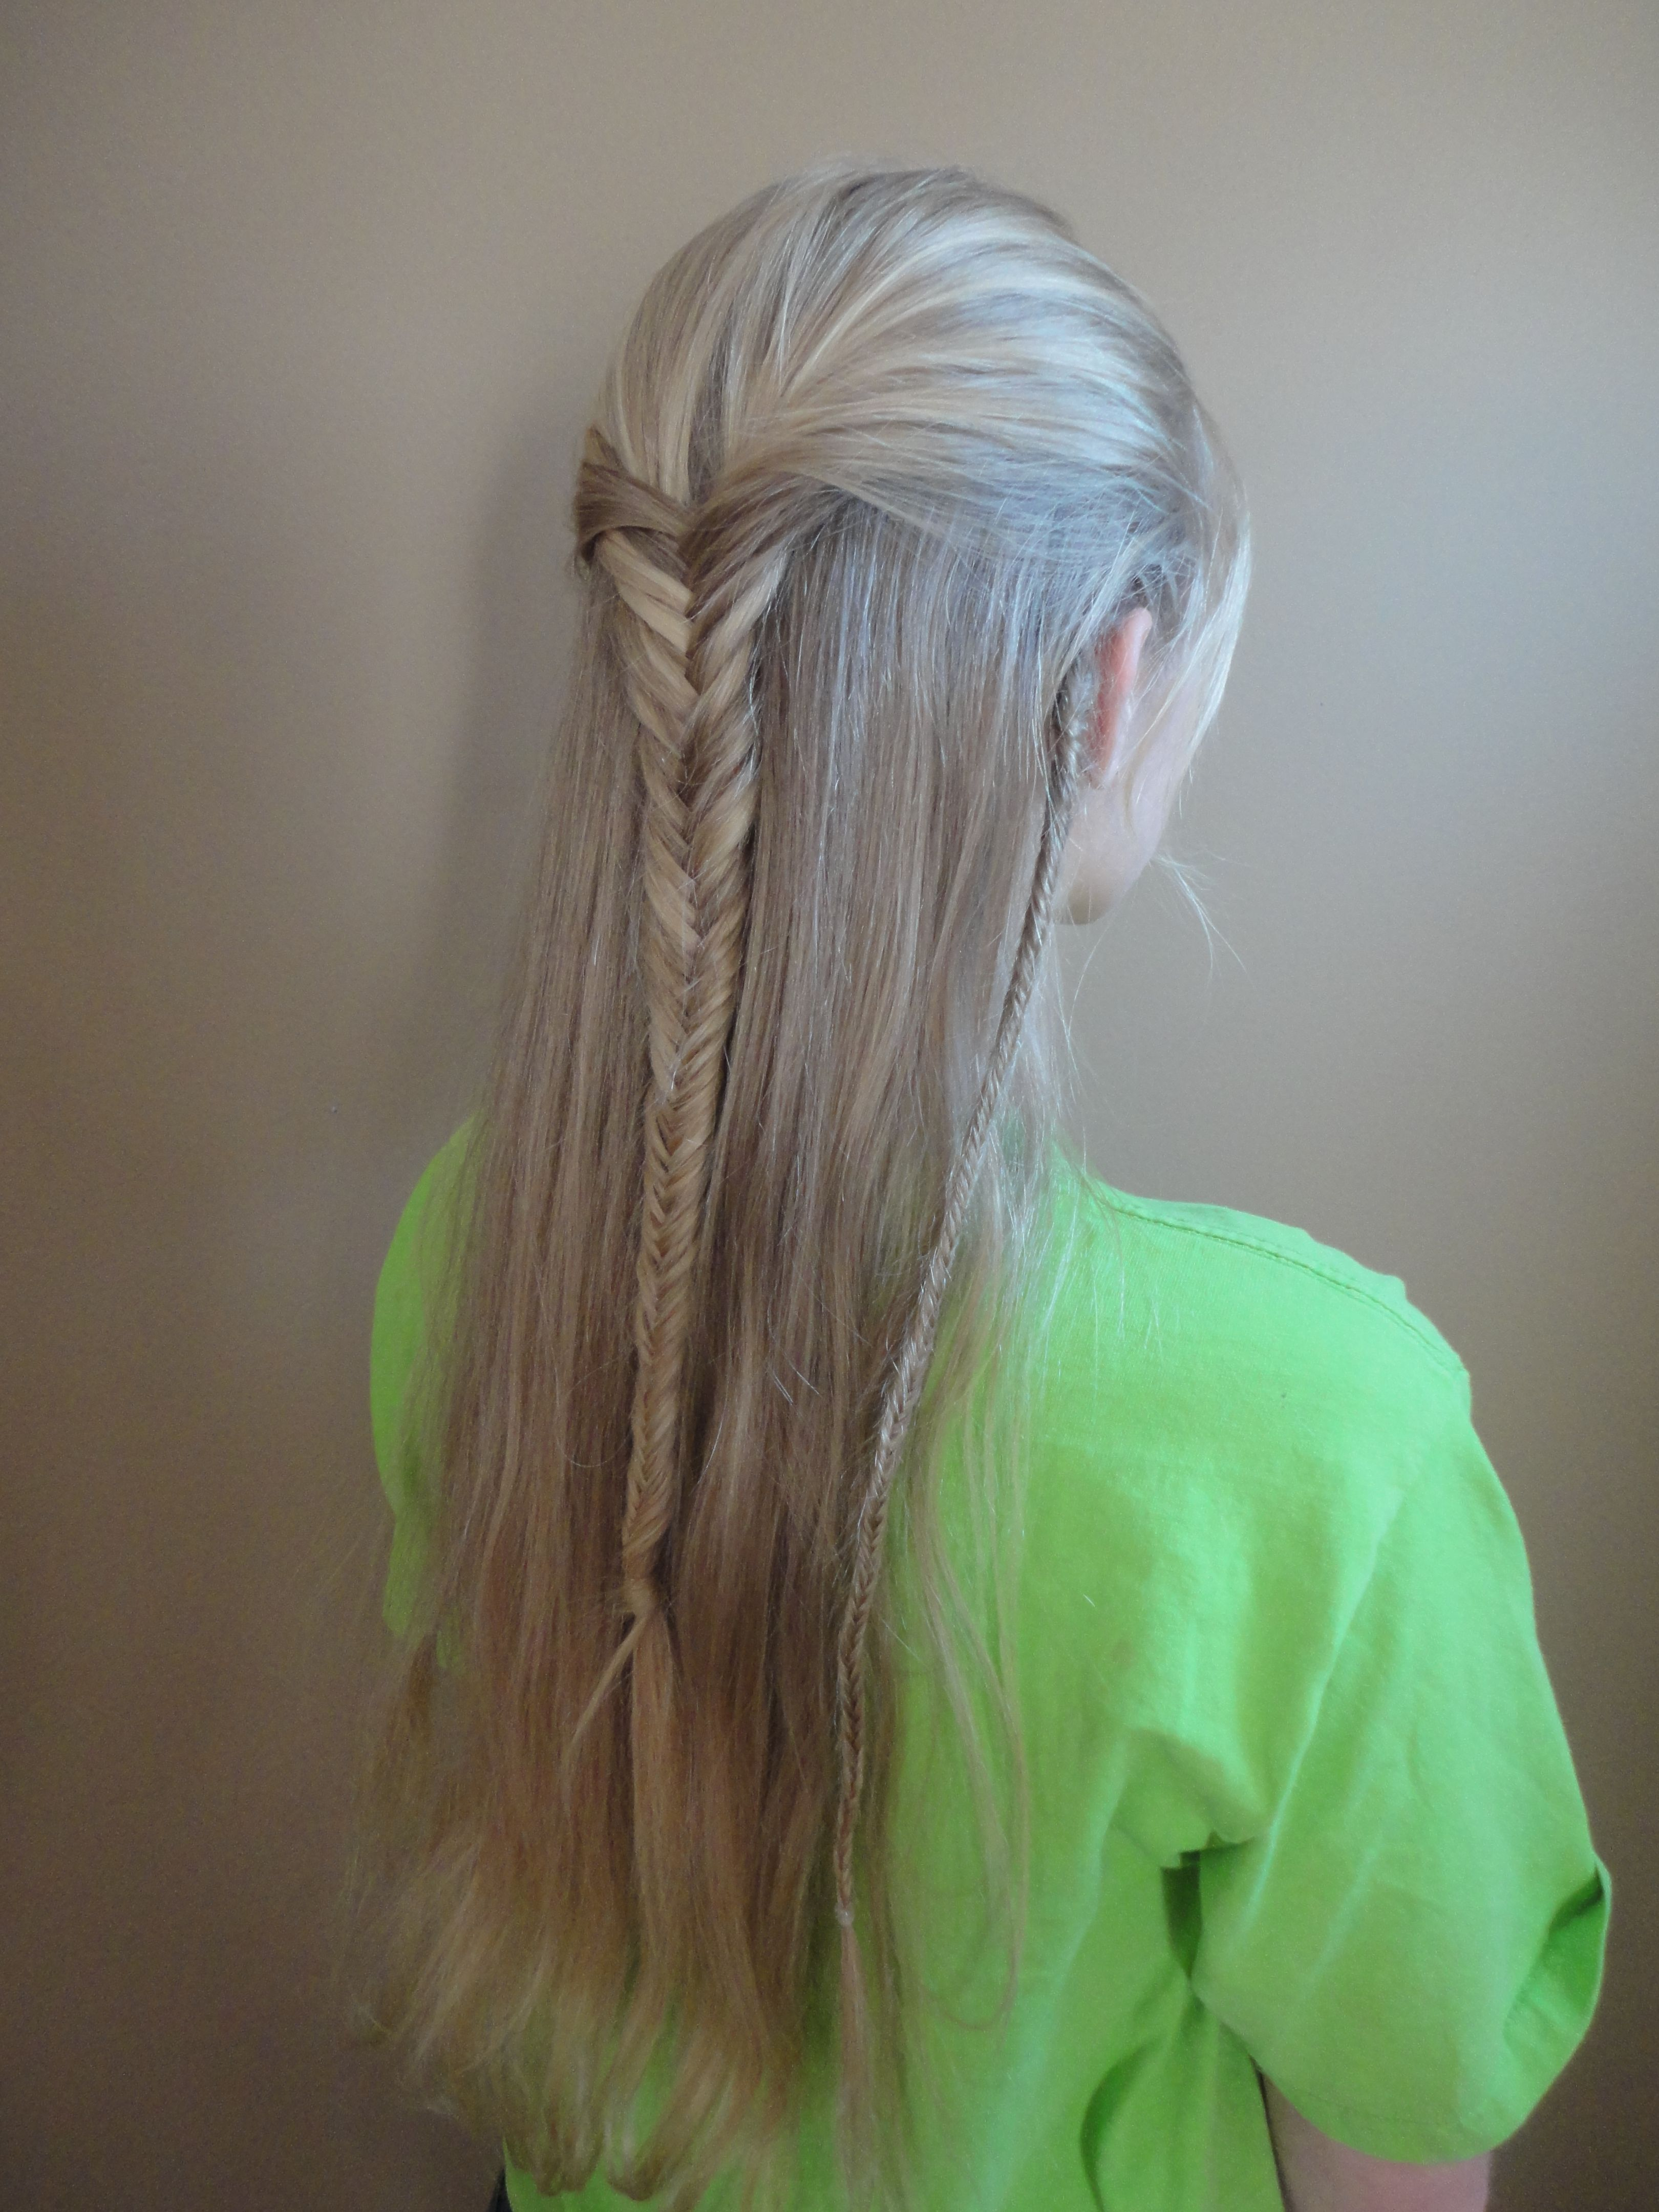 Braid Number Three Legolas Inspired Hairstyle Braiding For Freedom January 3rd Braided Hairstyles Hairstyle Braids